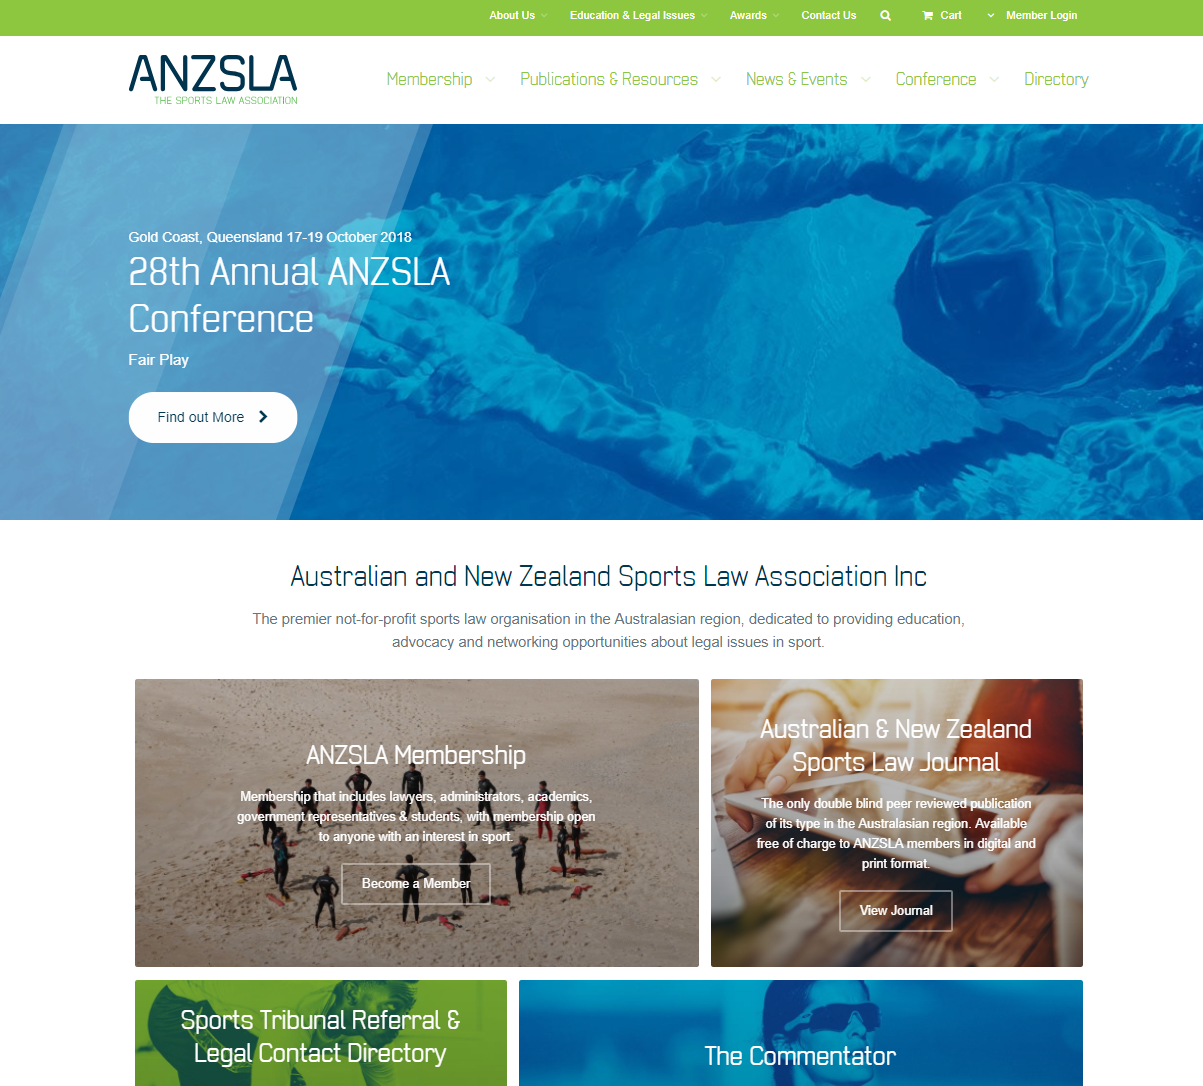 2c4c3f79f3e0 The premier not-for-profit sports law organisation in the Australasian  region